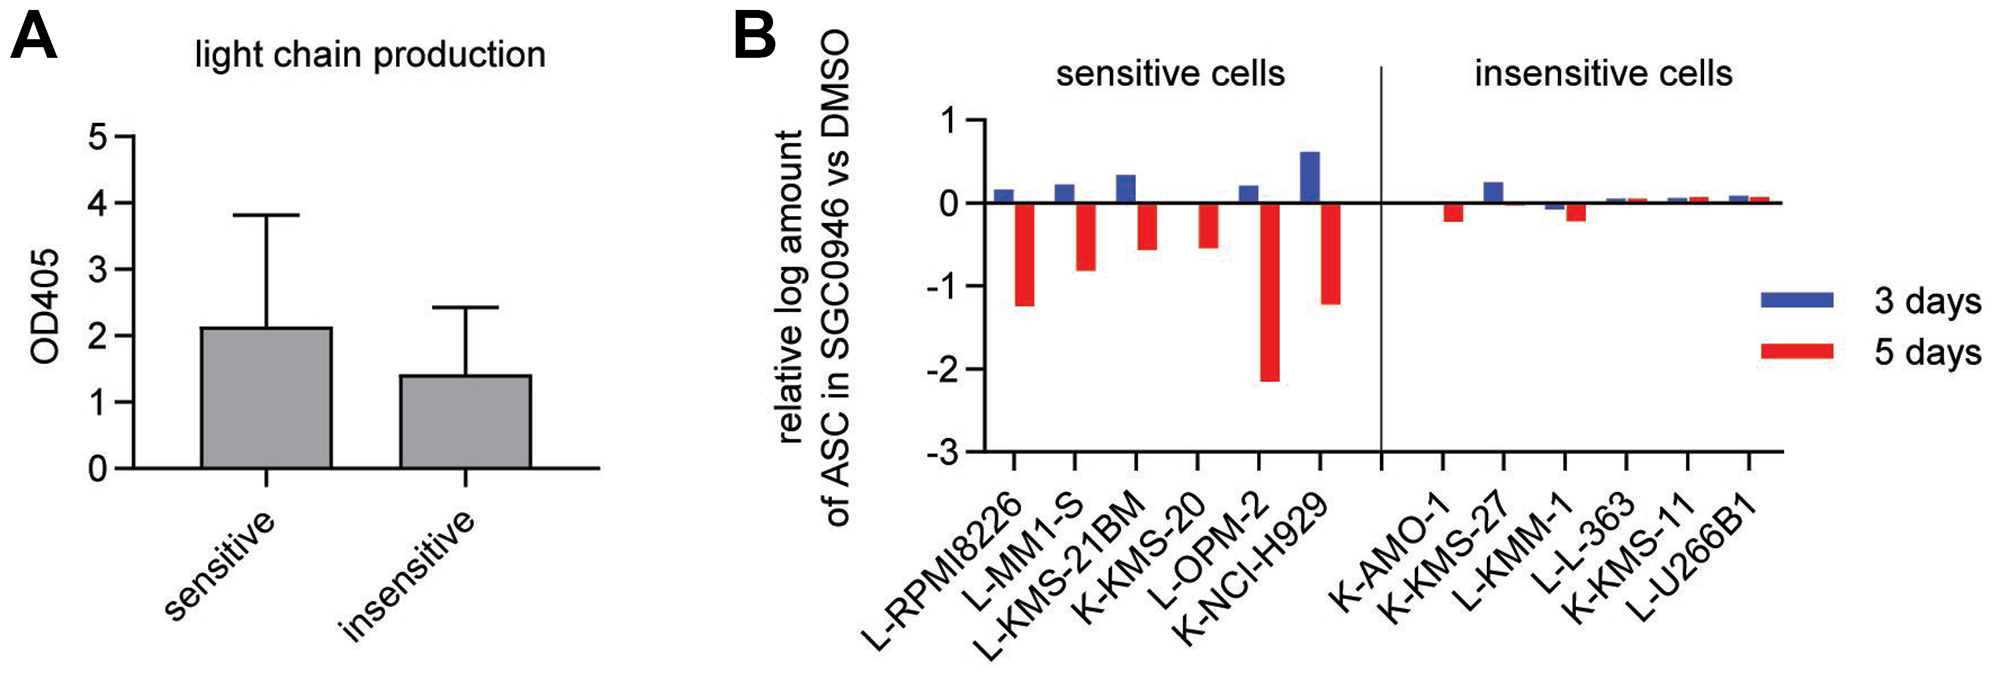 Number of antibody-secreting cells is reduced in sensitive cell lines.